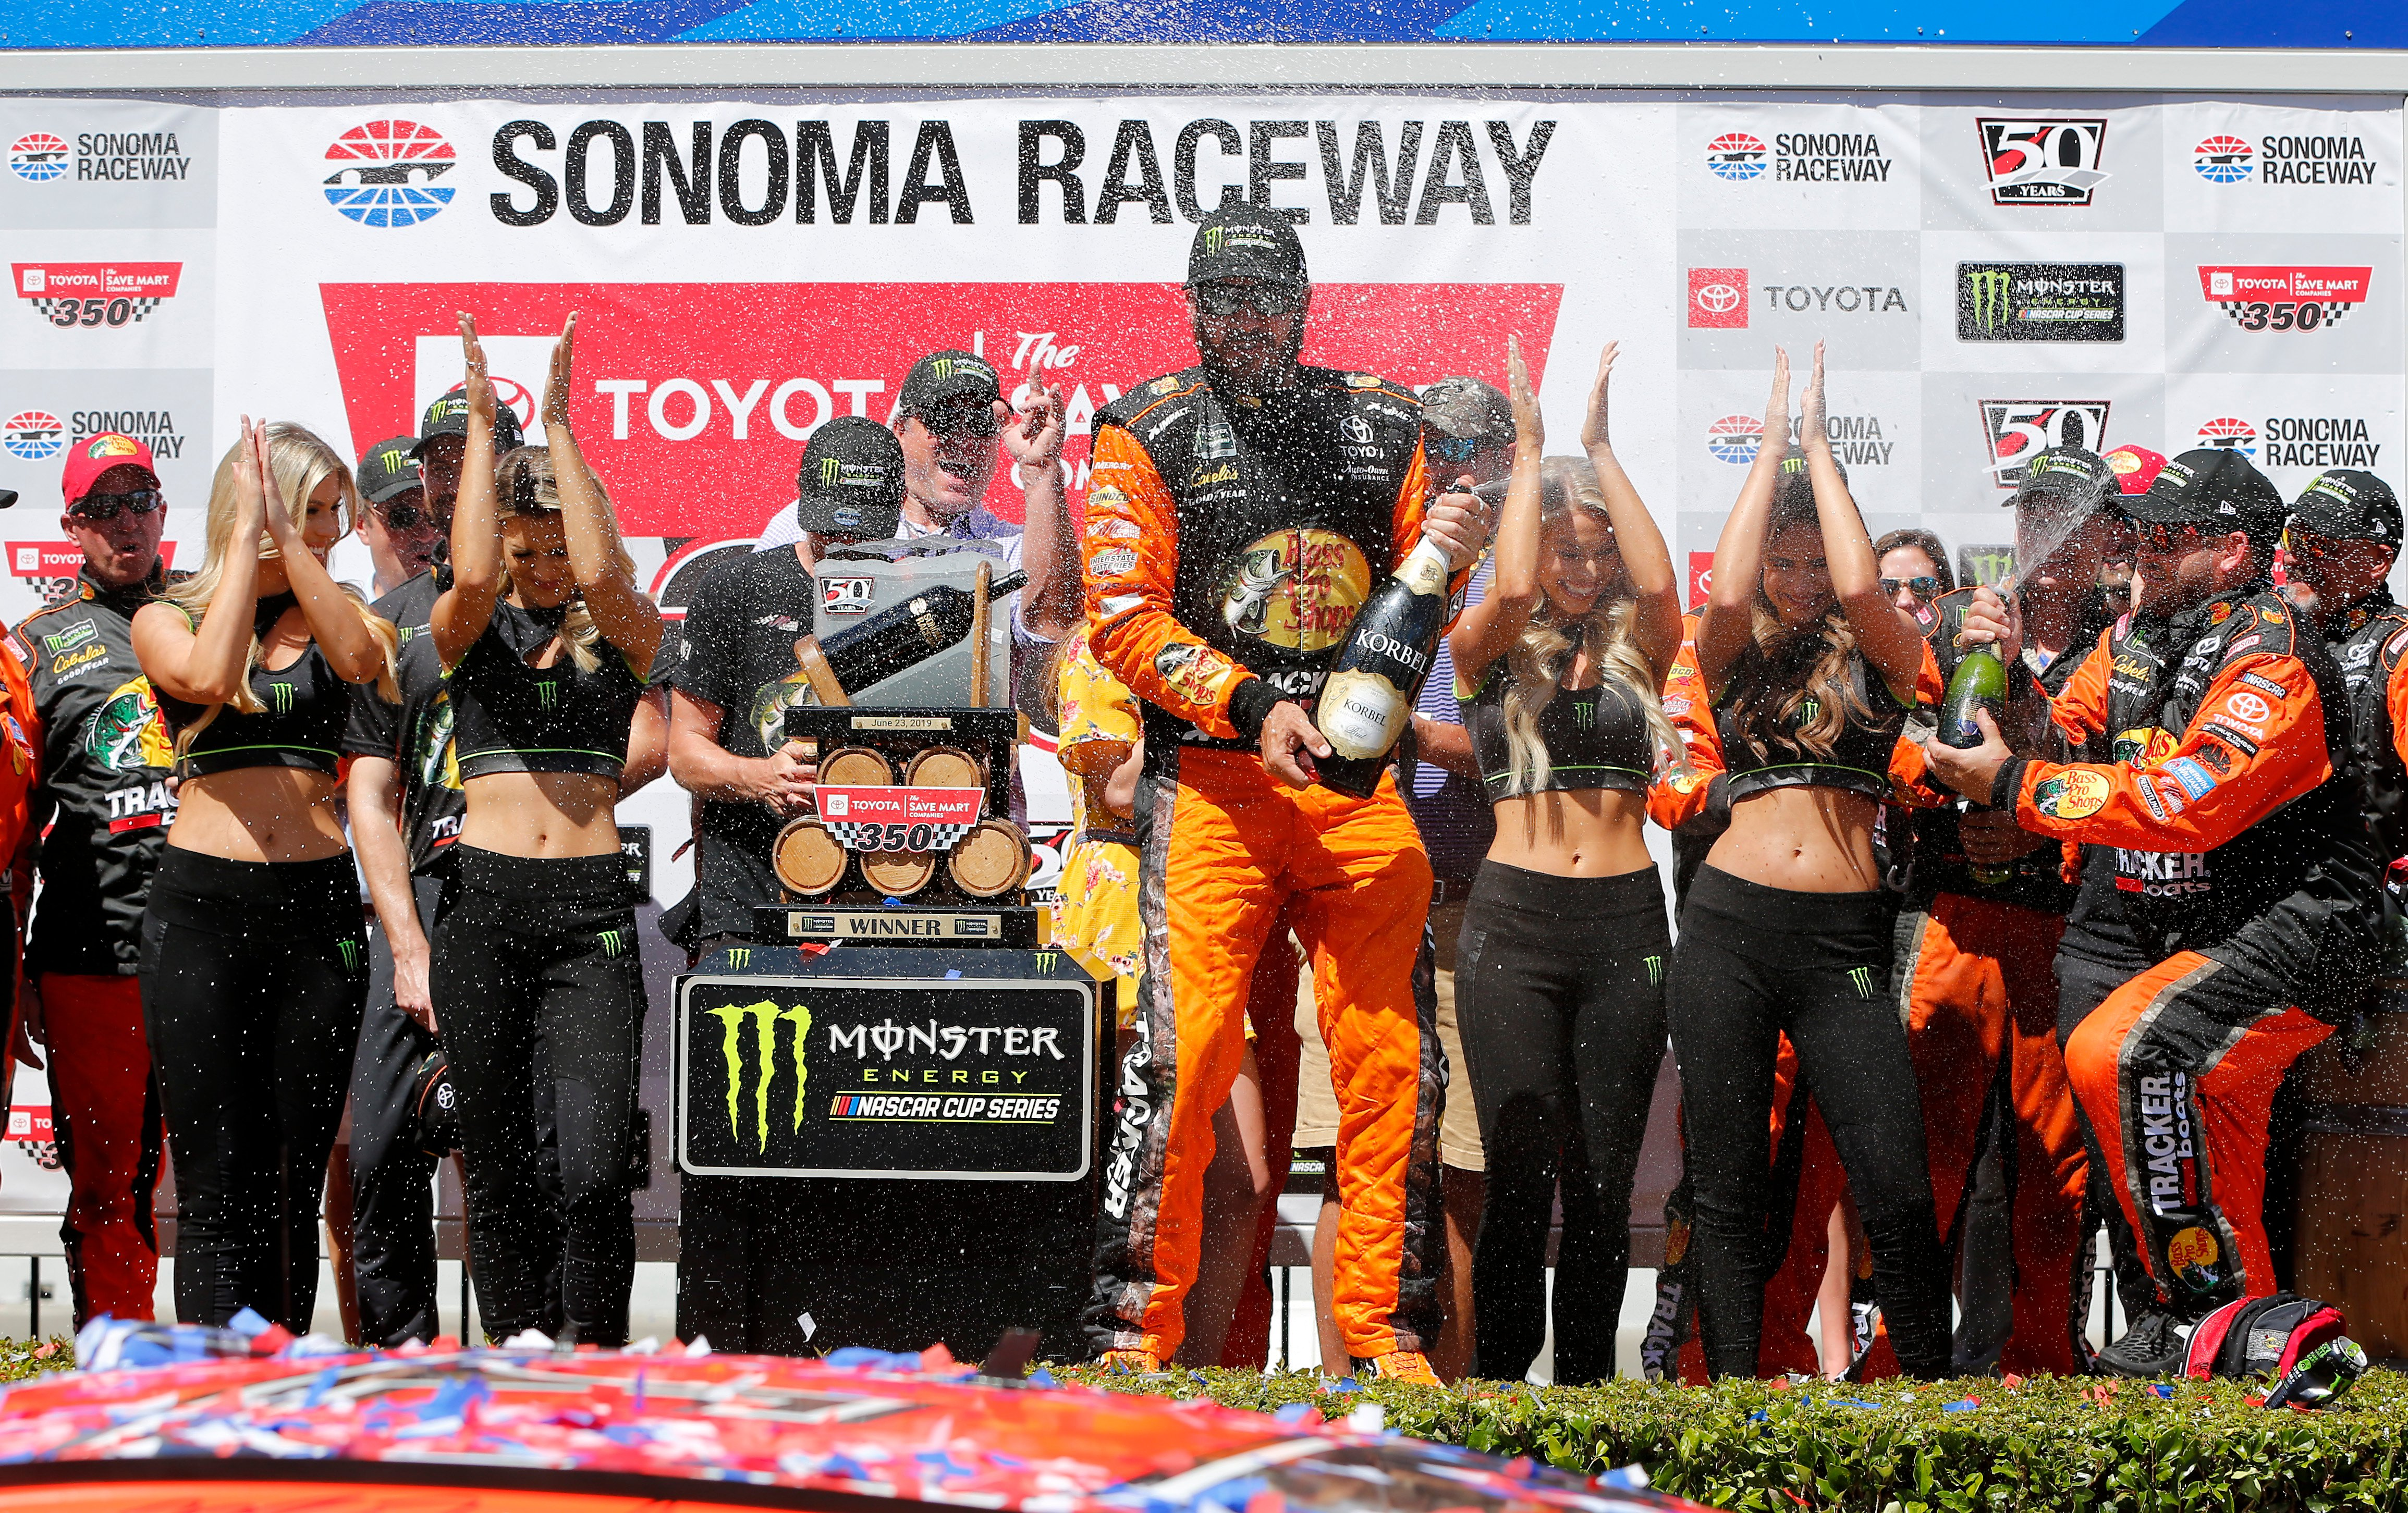 Martin Truex Jr and the Monster Energy Girls in Sonoma Raceway victory lane